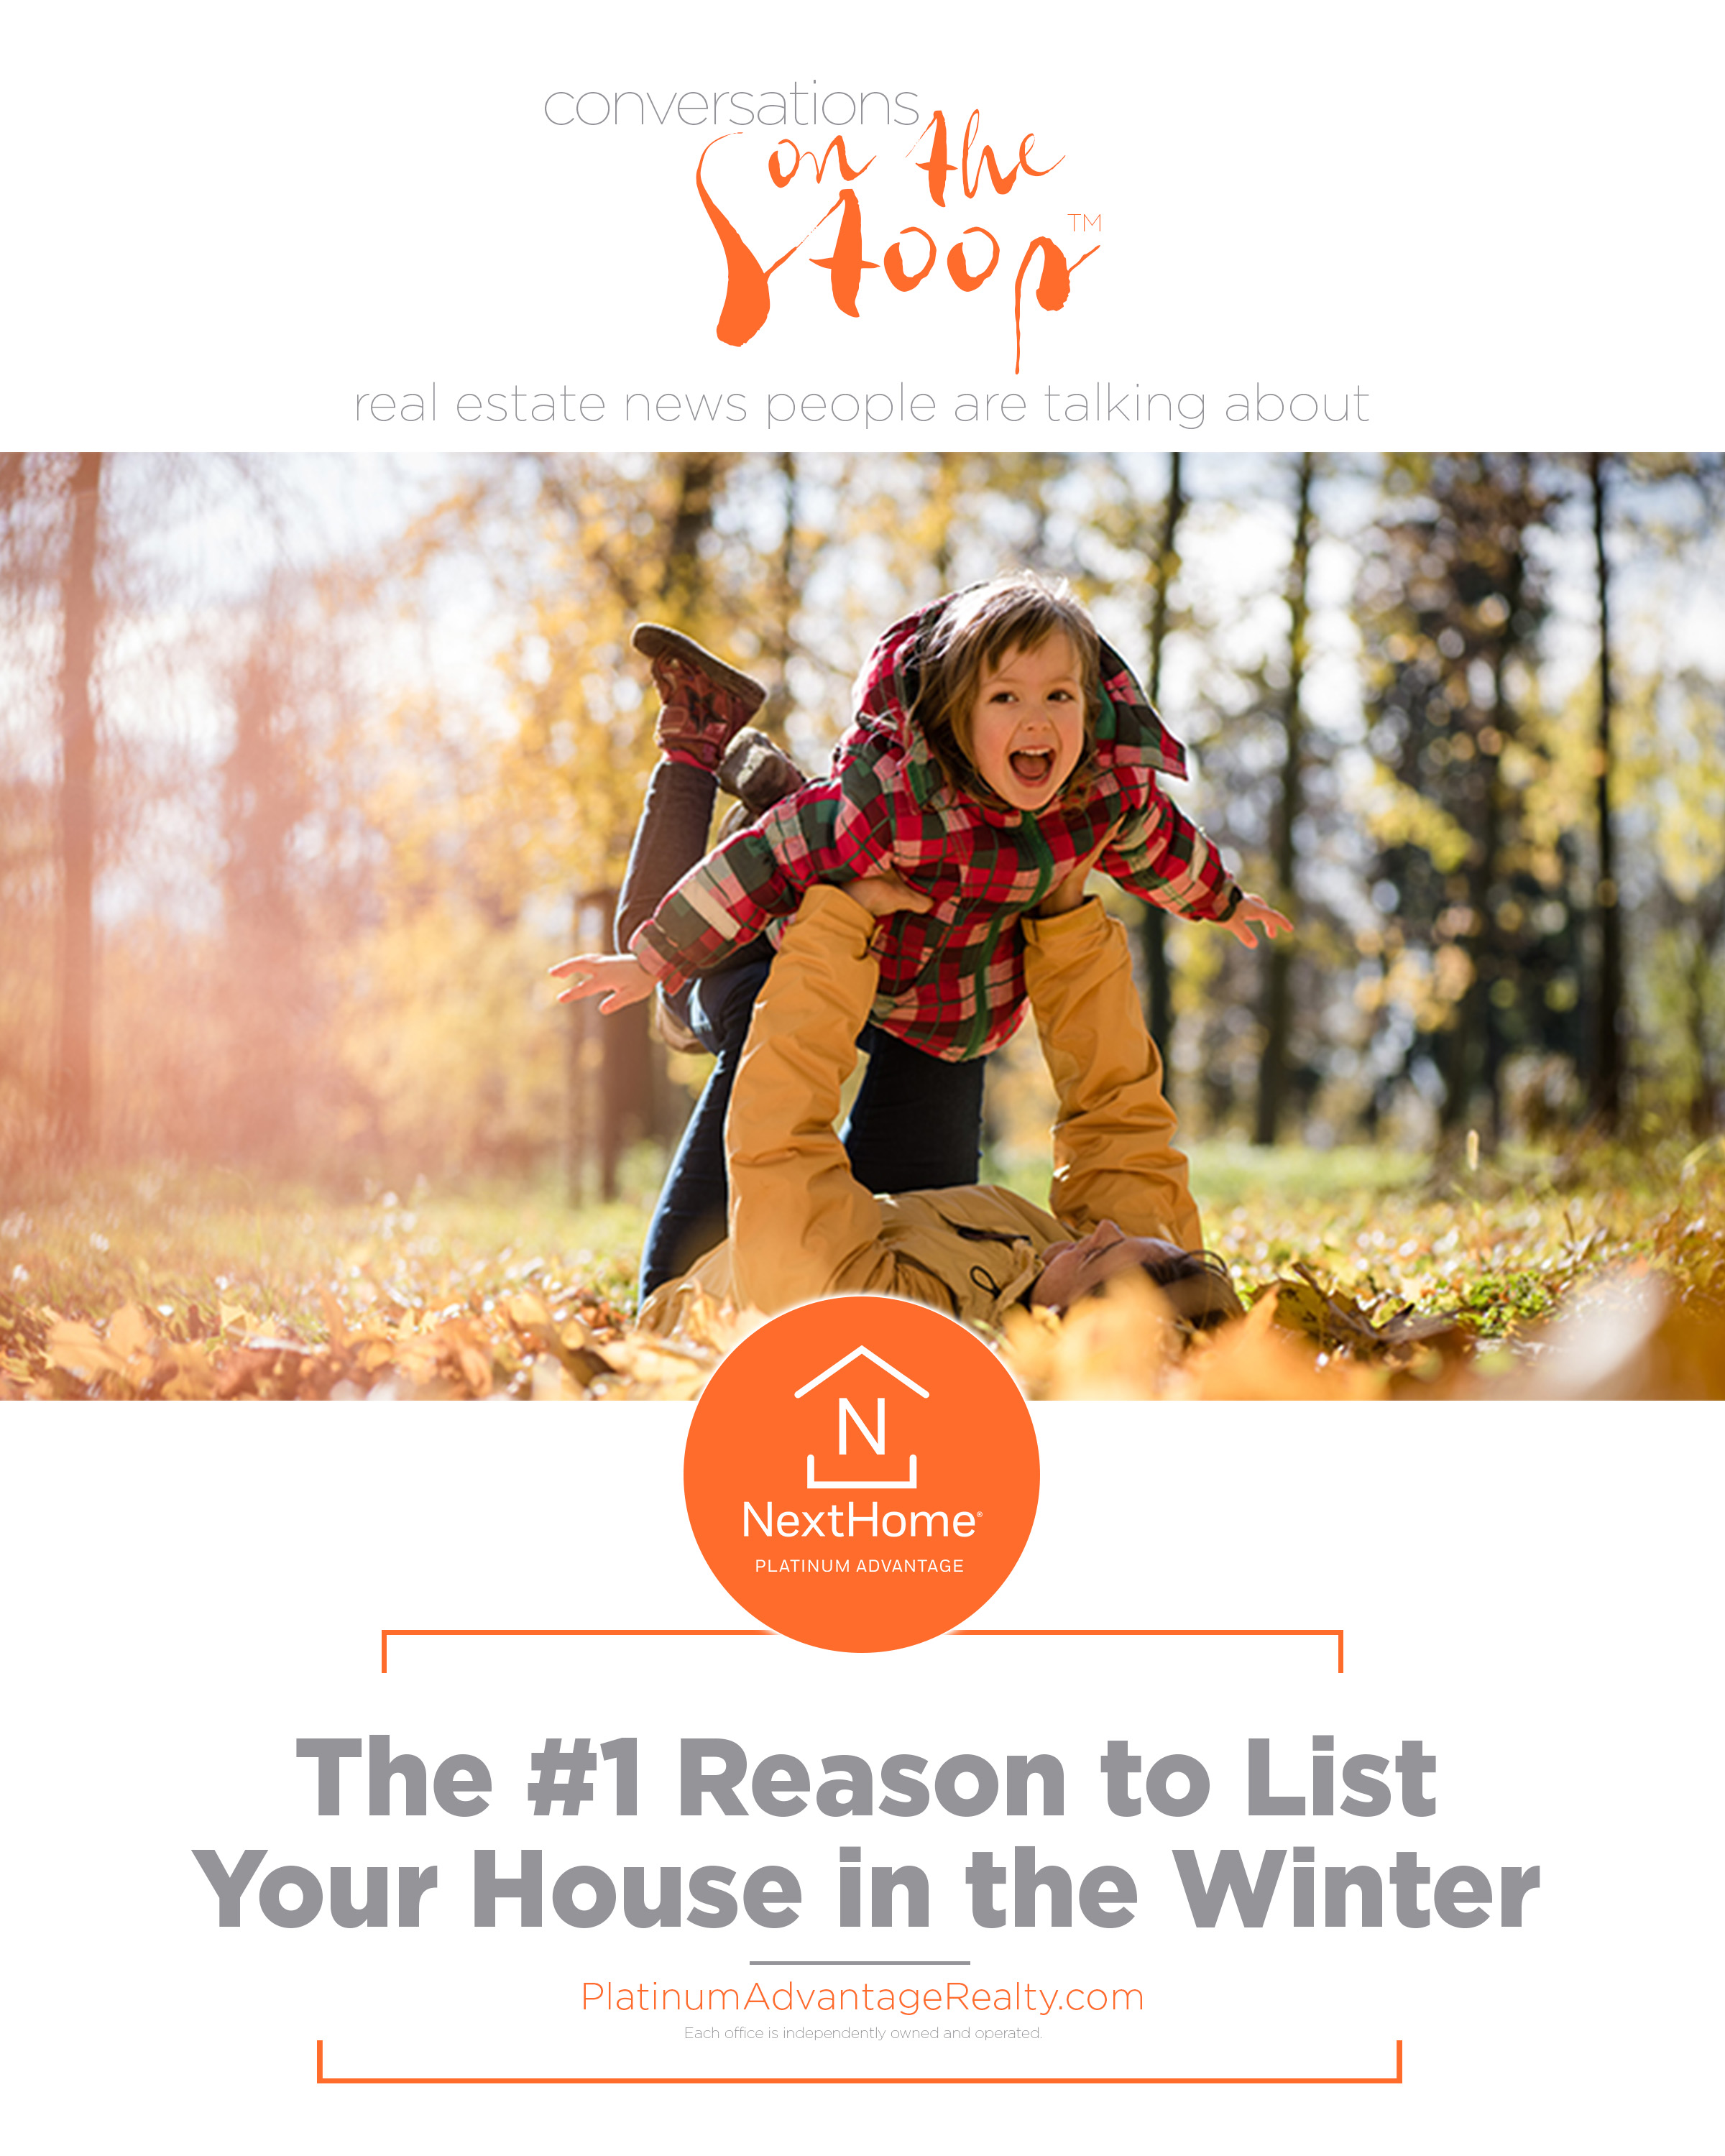 The #1 Reason to List Your House in the Winter